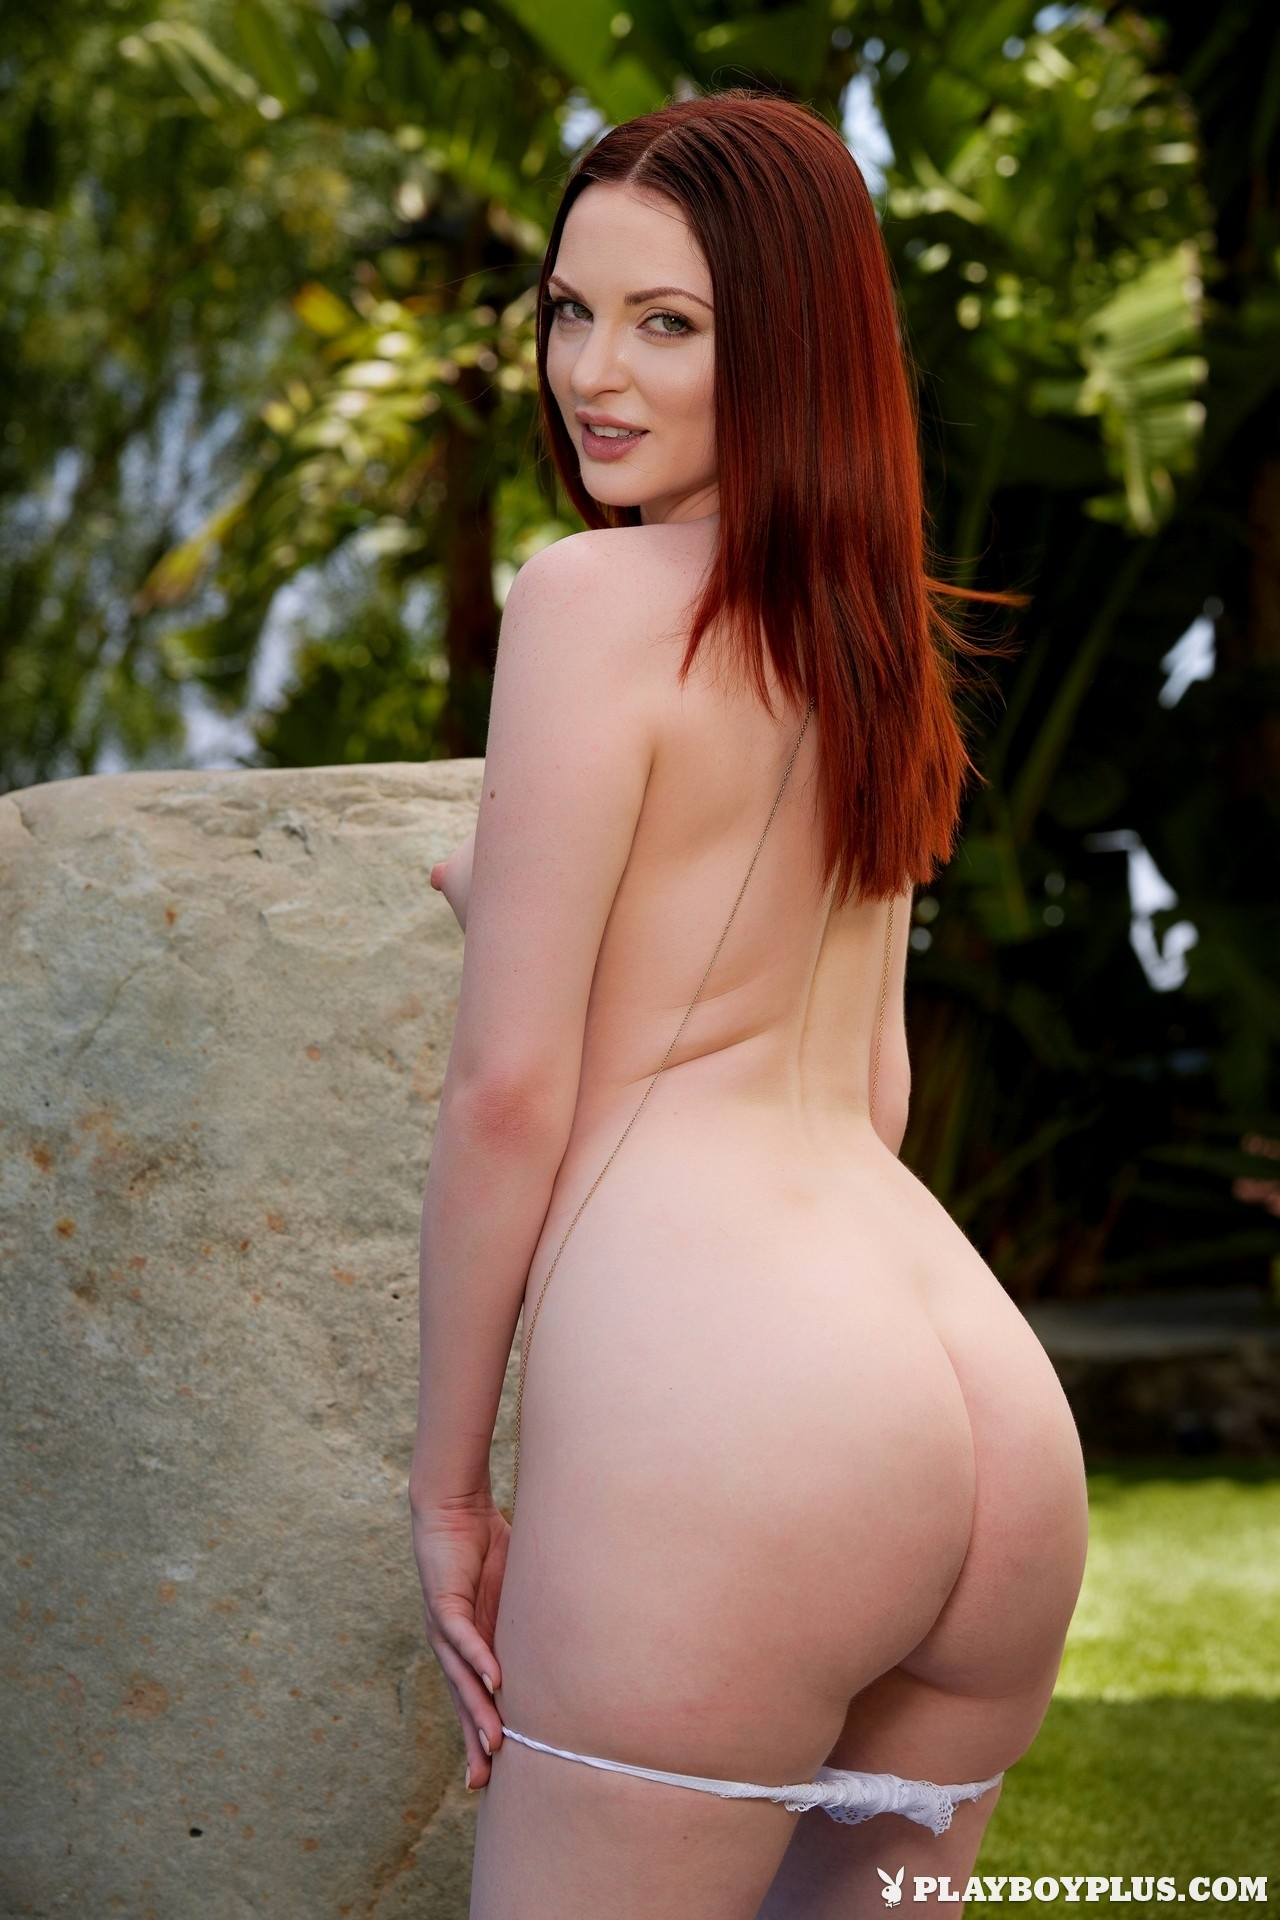 Carissa white redhead nude ass lawn small tits playboy 14